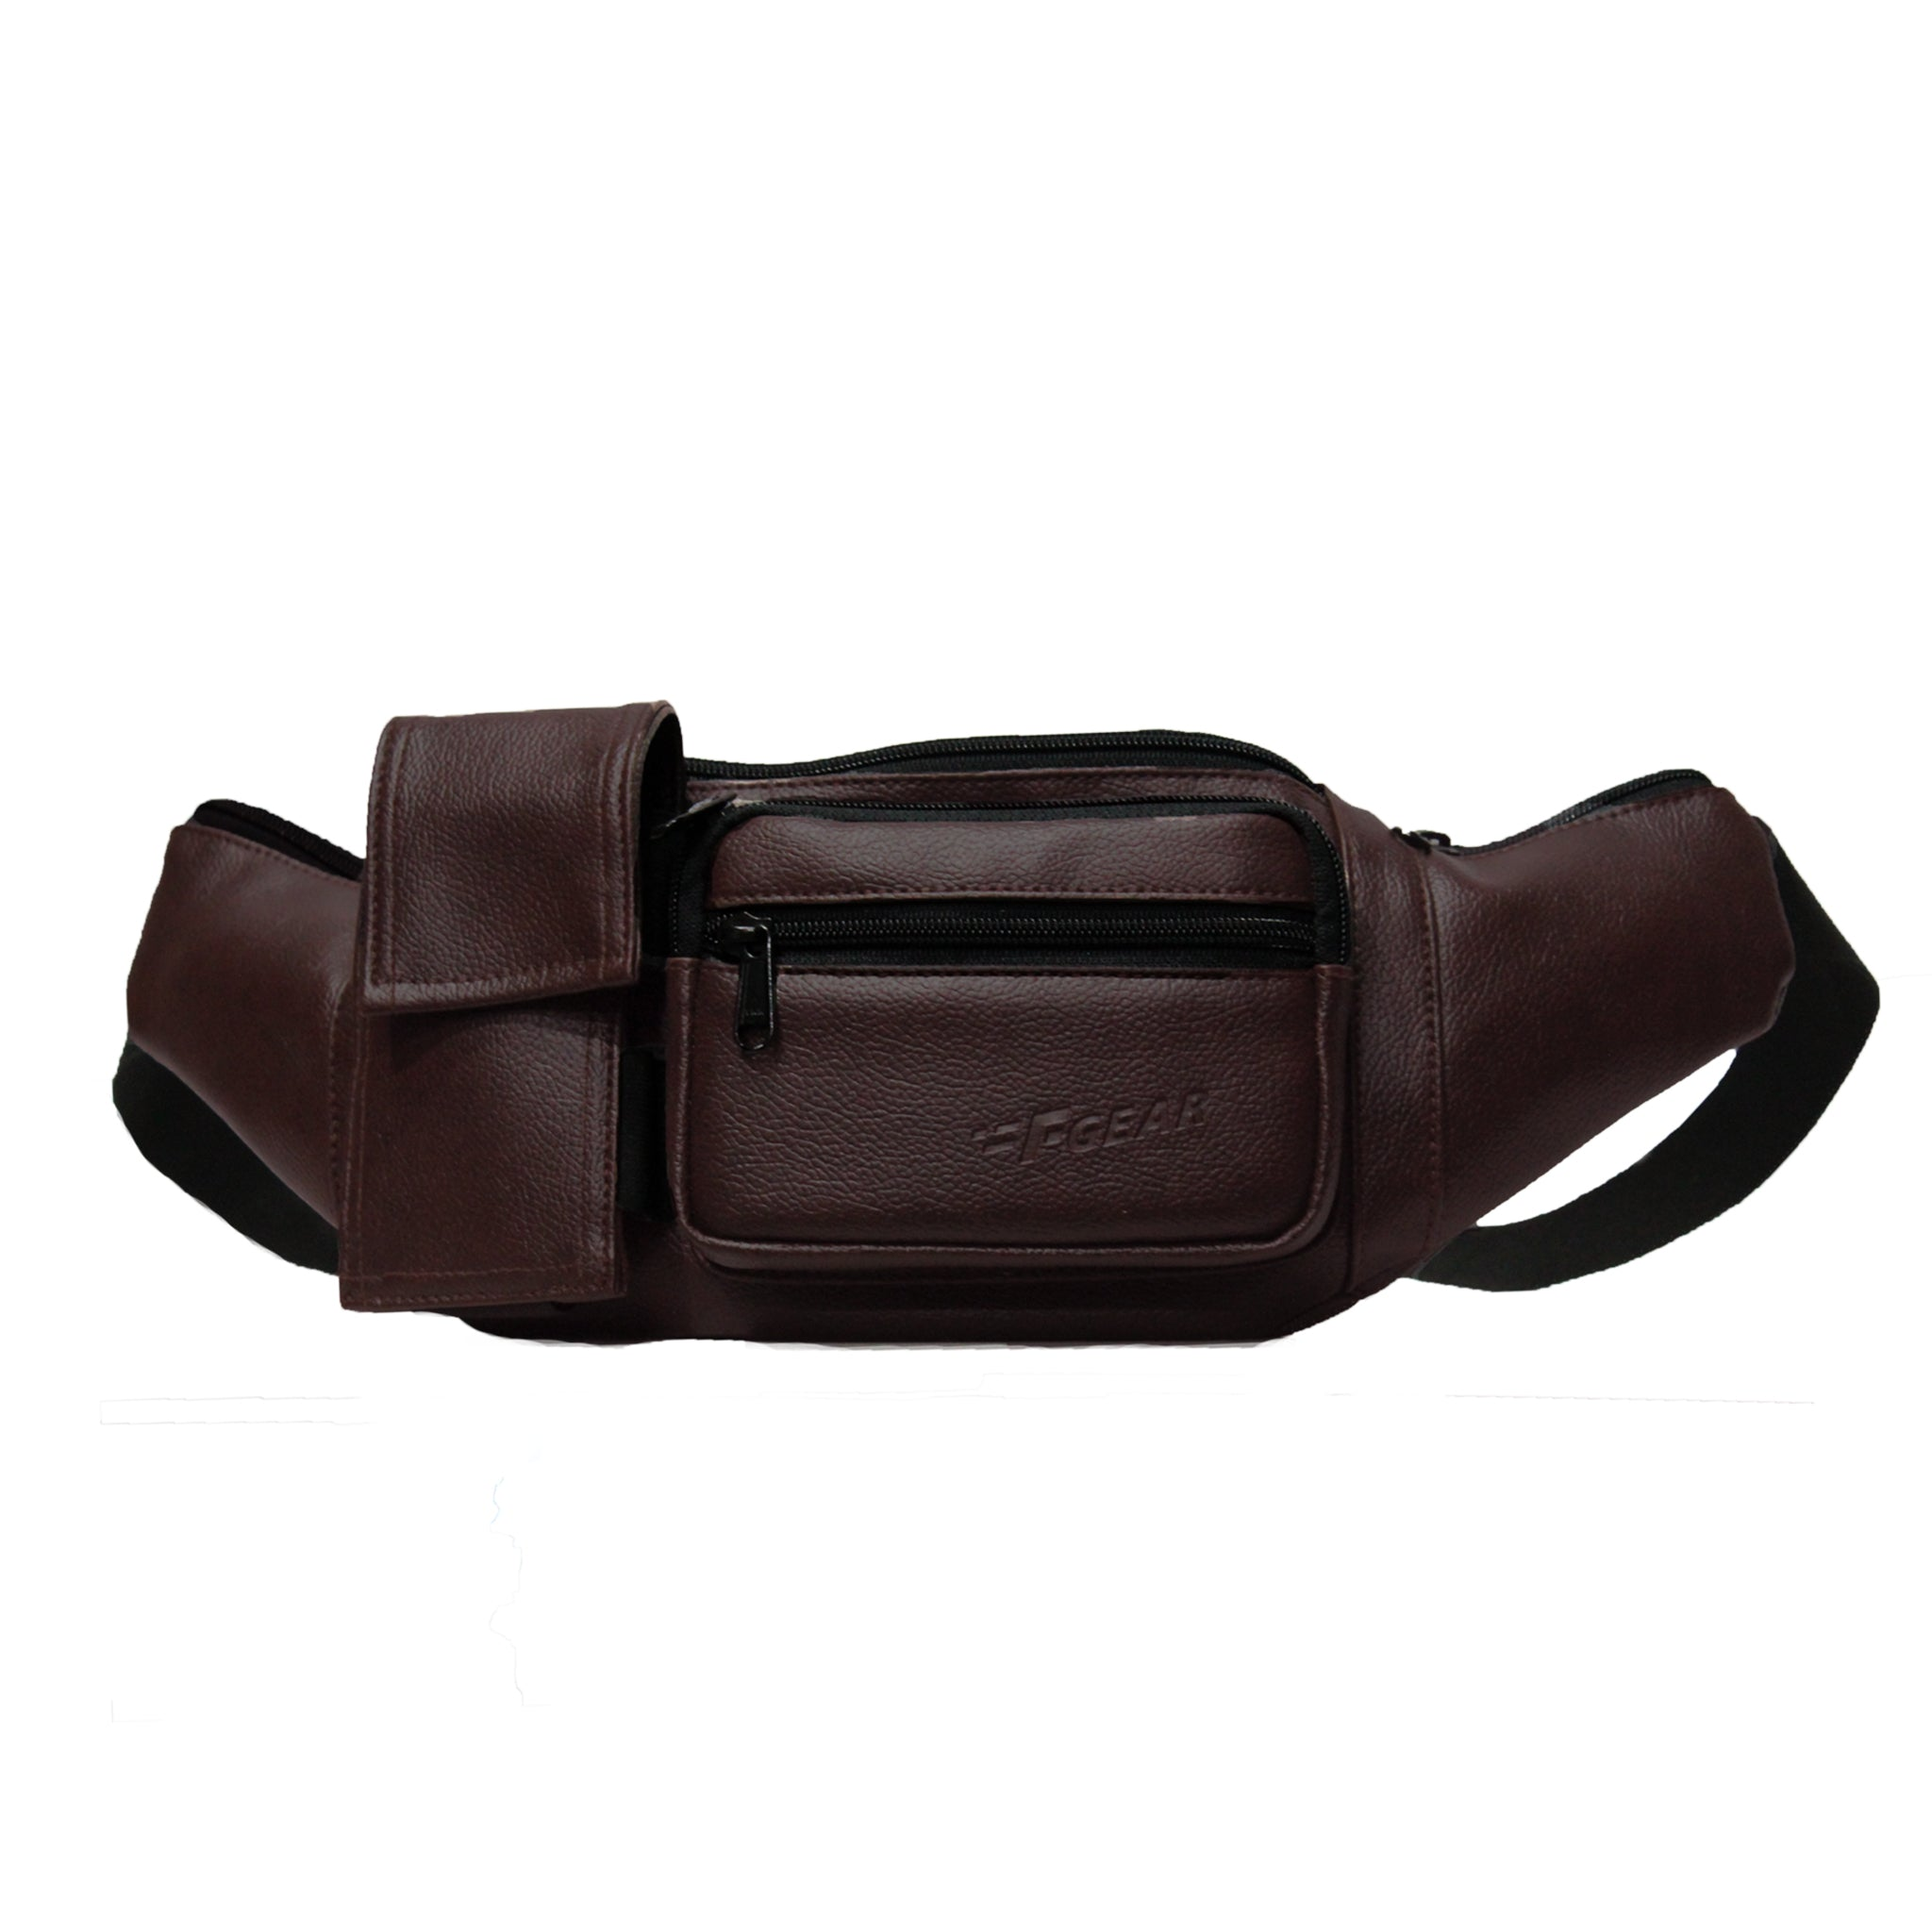 F Gear Potent Art Leather Brown Sports Waist Bag (3680)